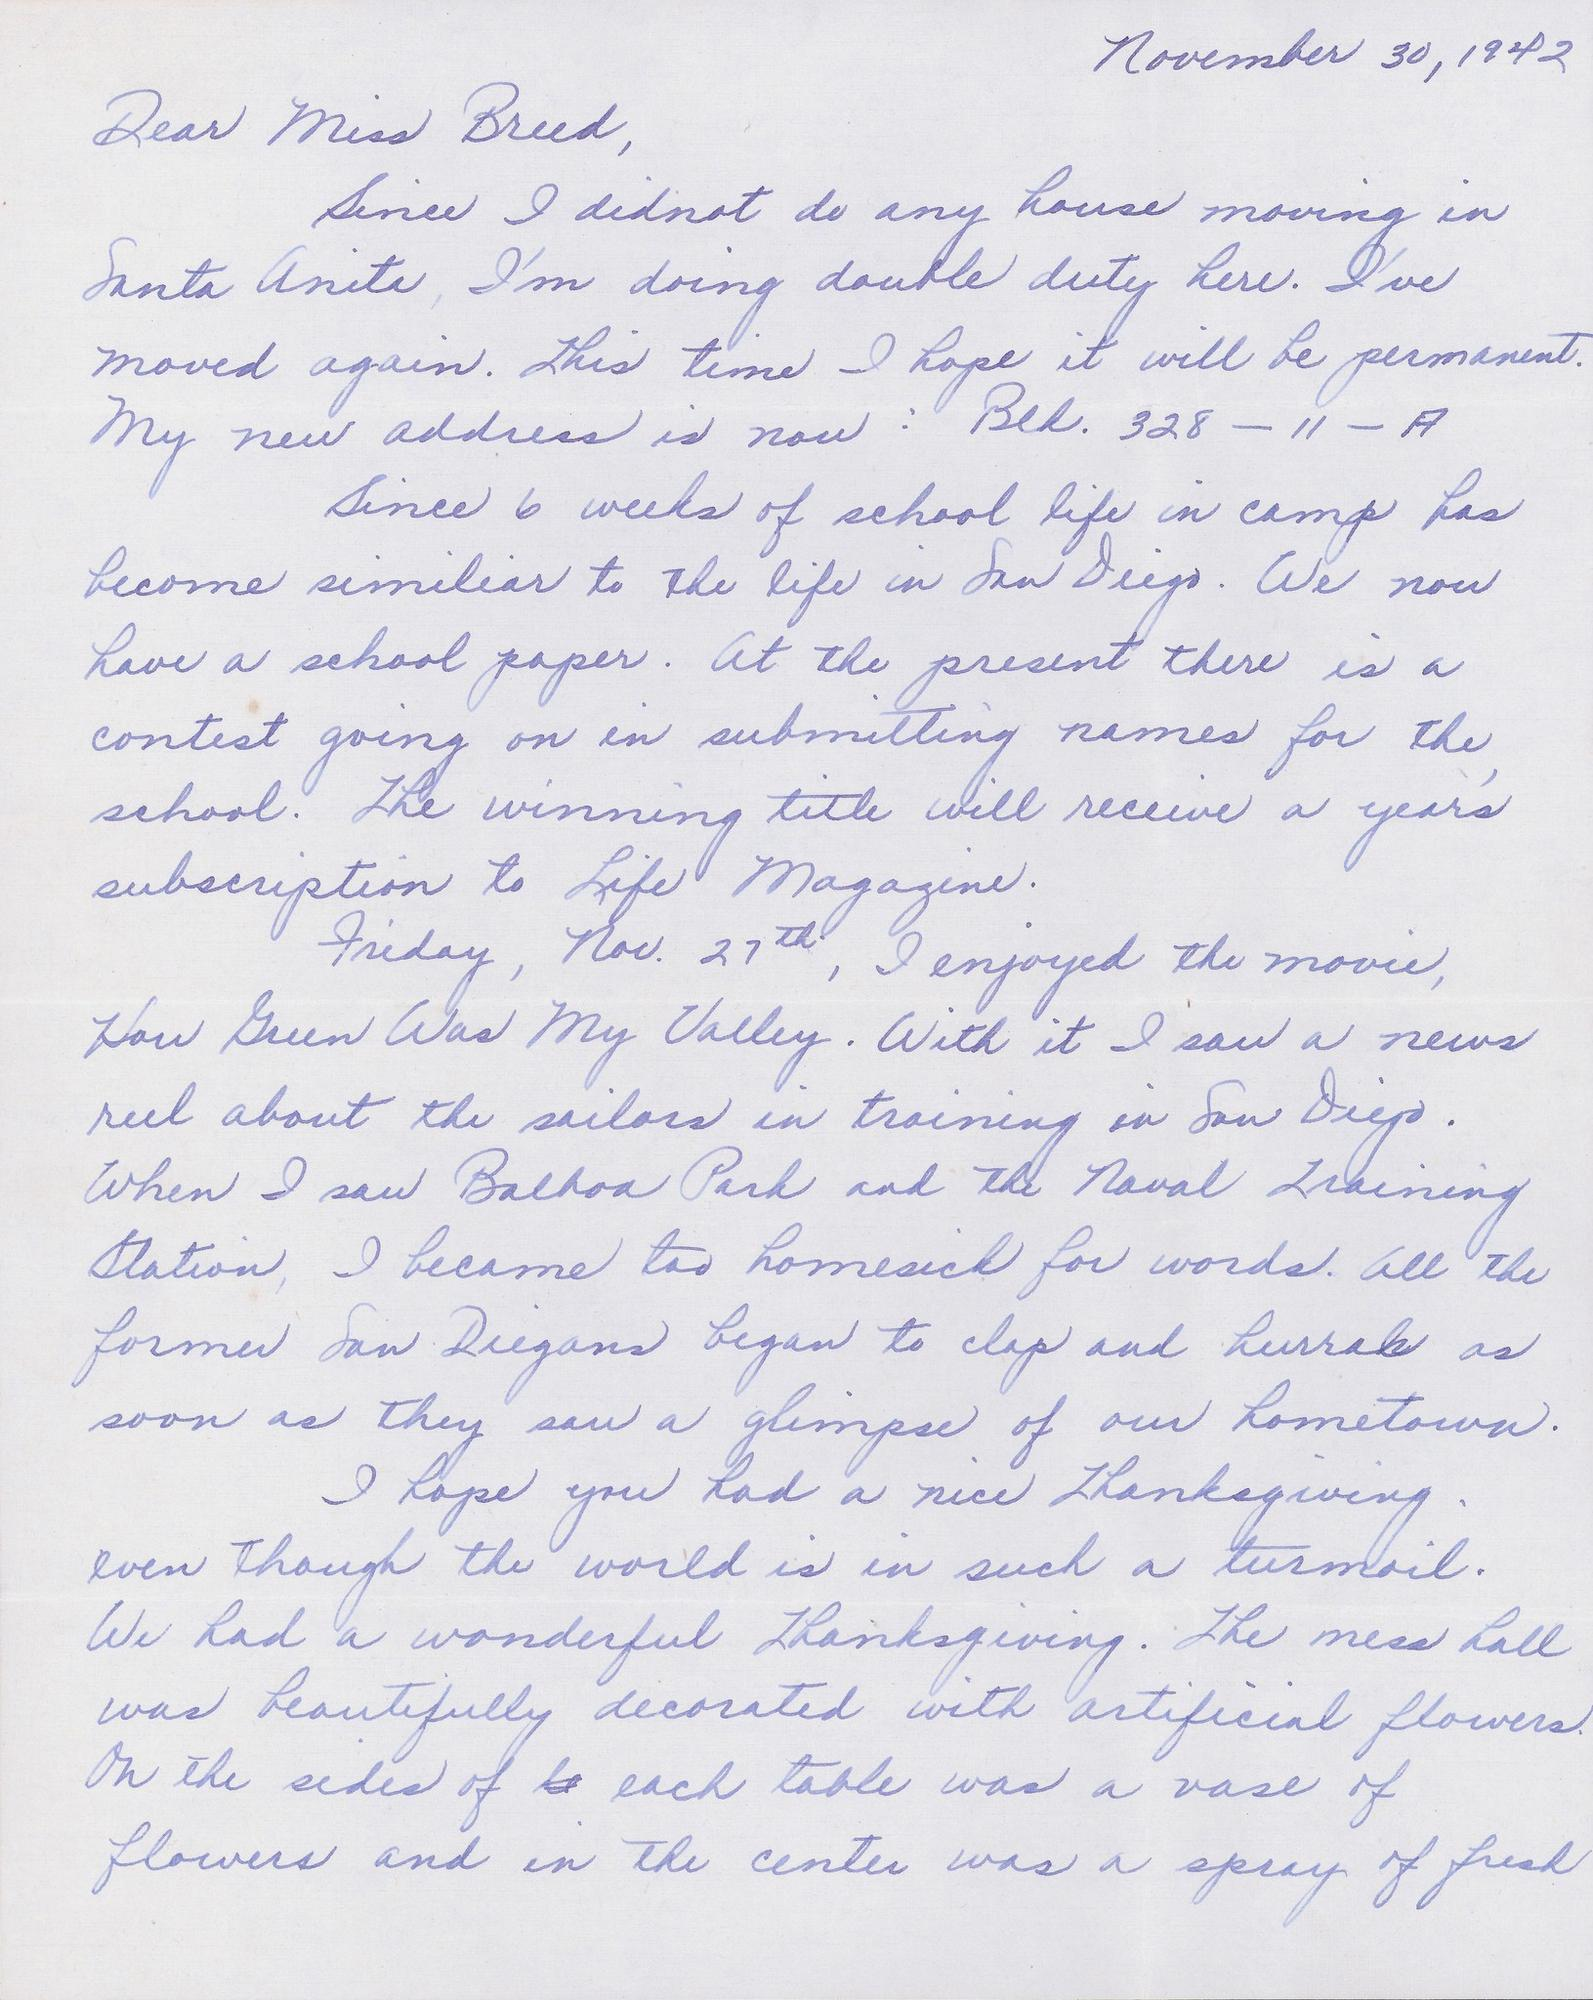 A 1942 letter from Louise Ogawa to Clara Breed